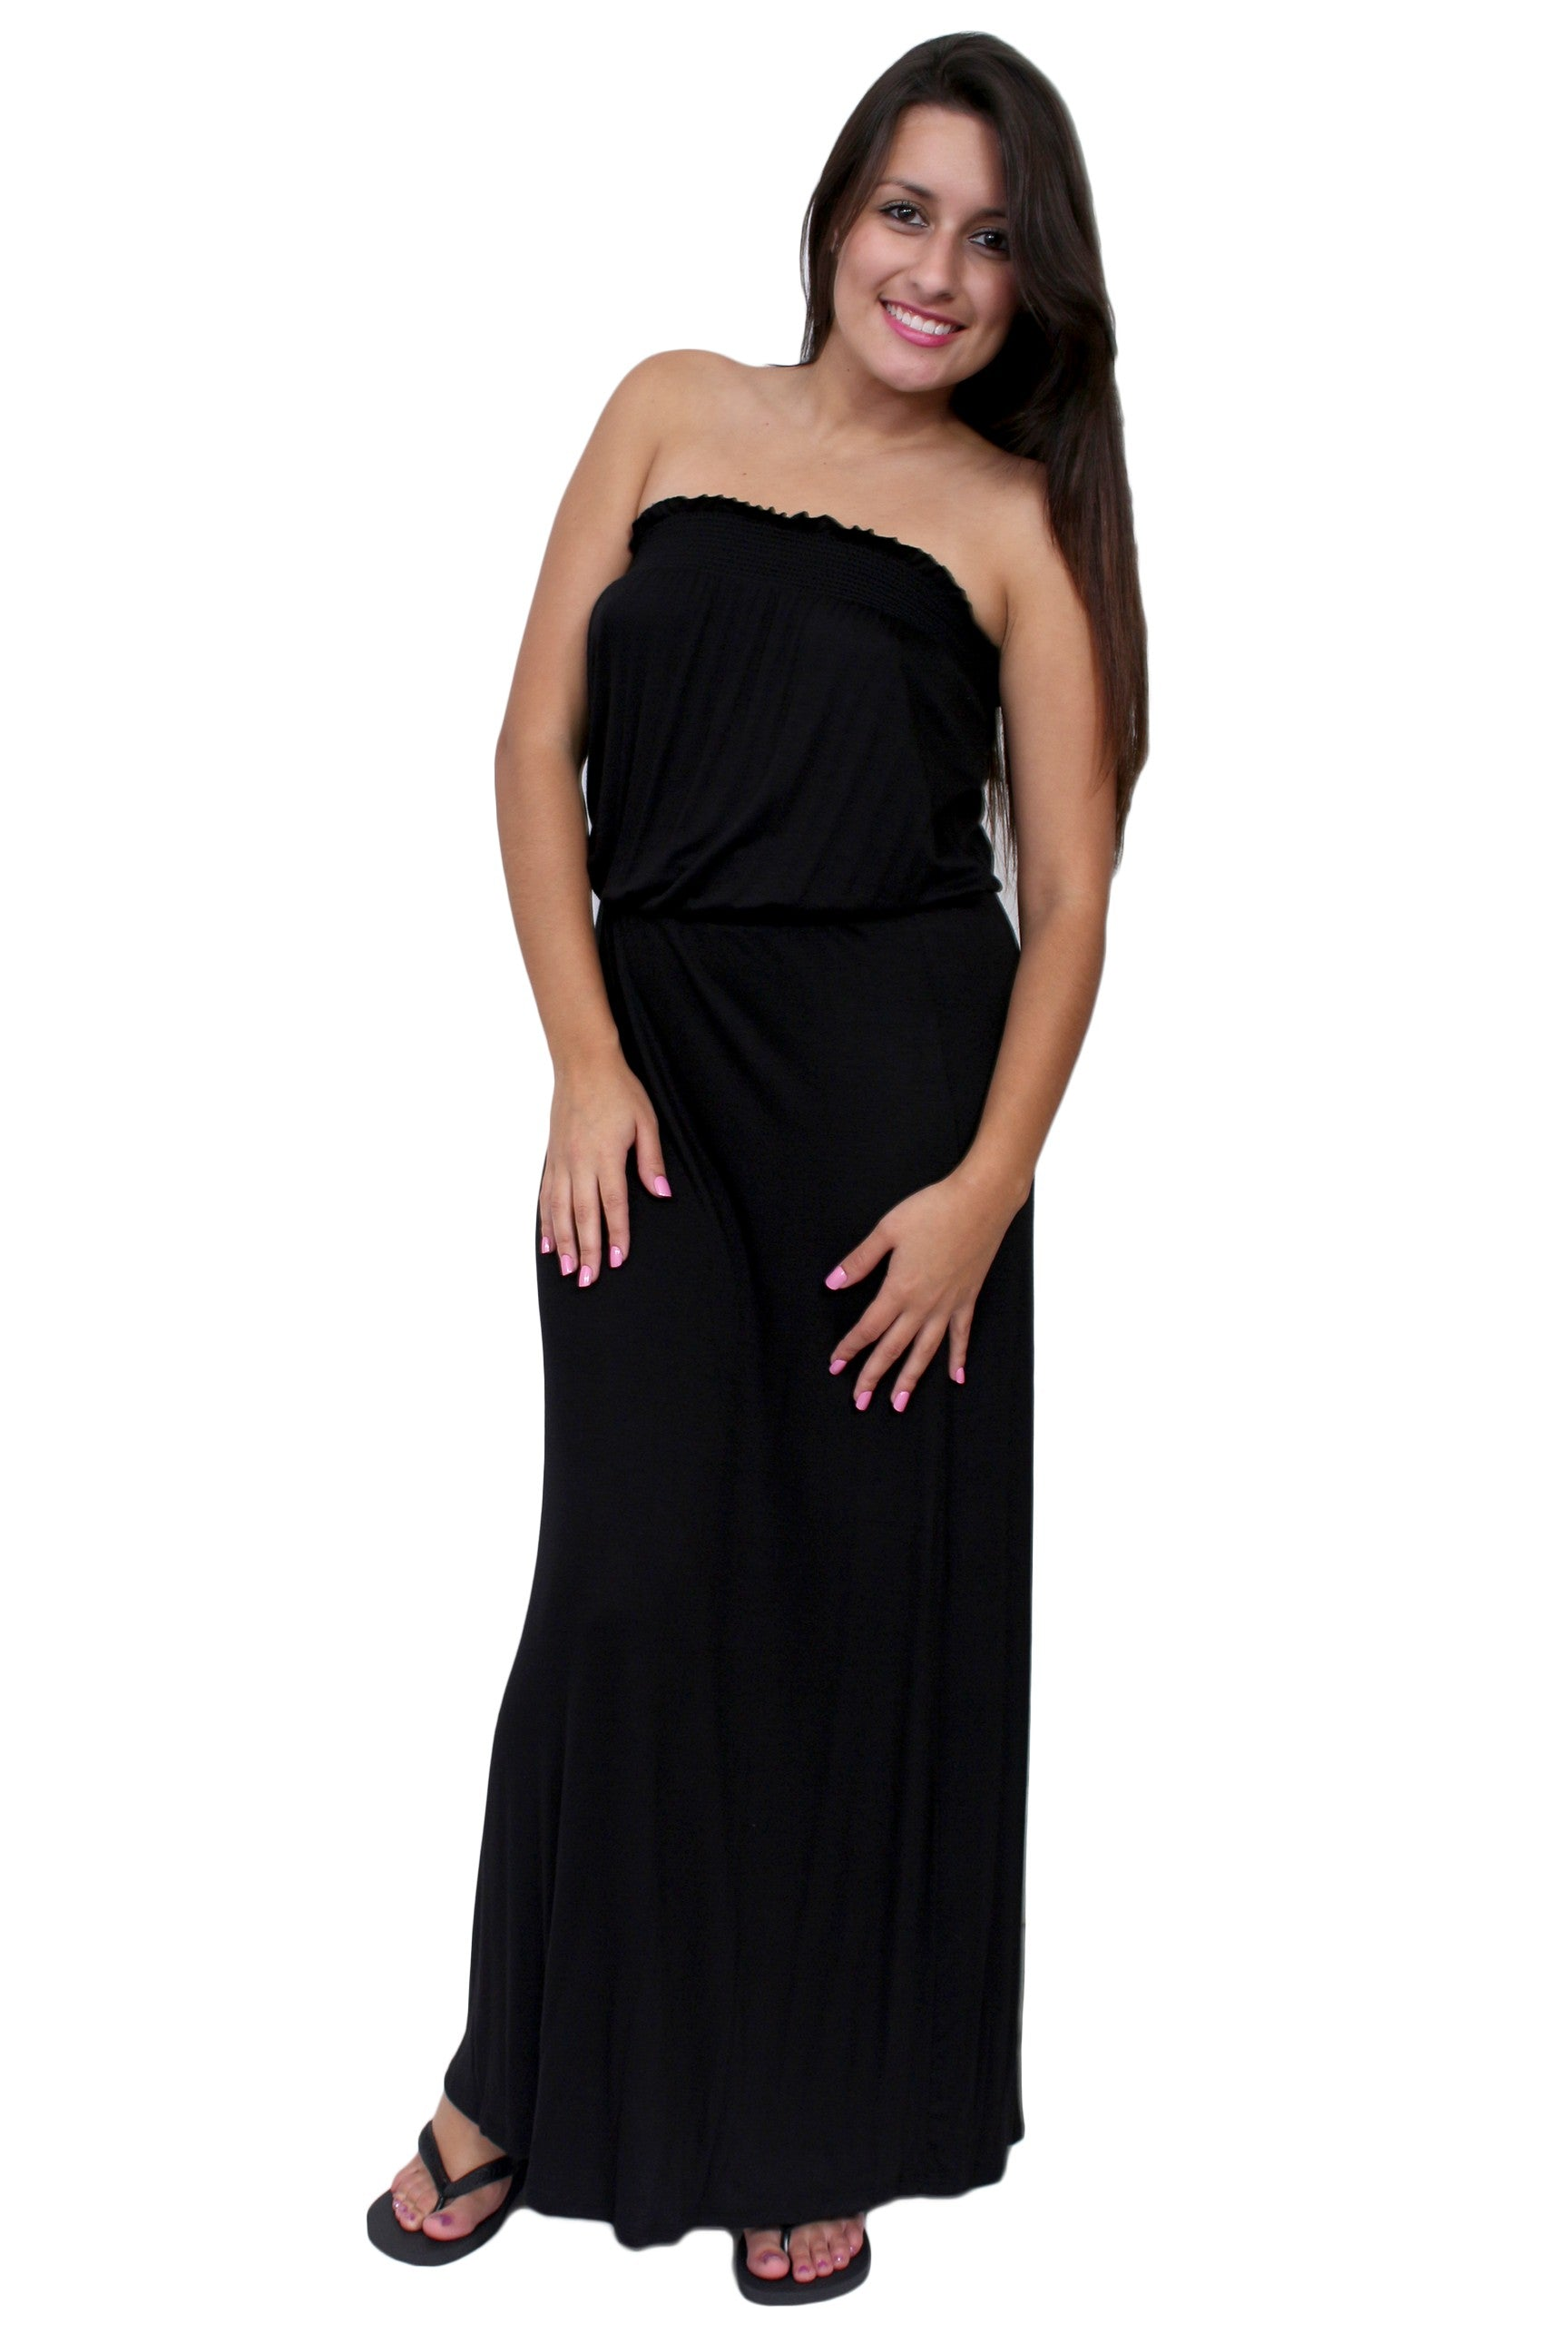 Women's smocked Tube Maxi DRESS: BLACK (LARGE)